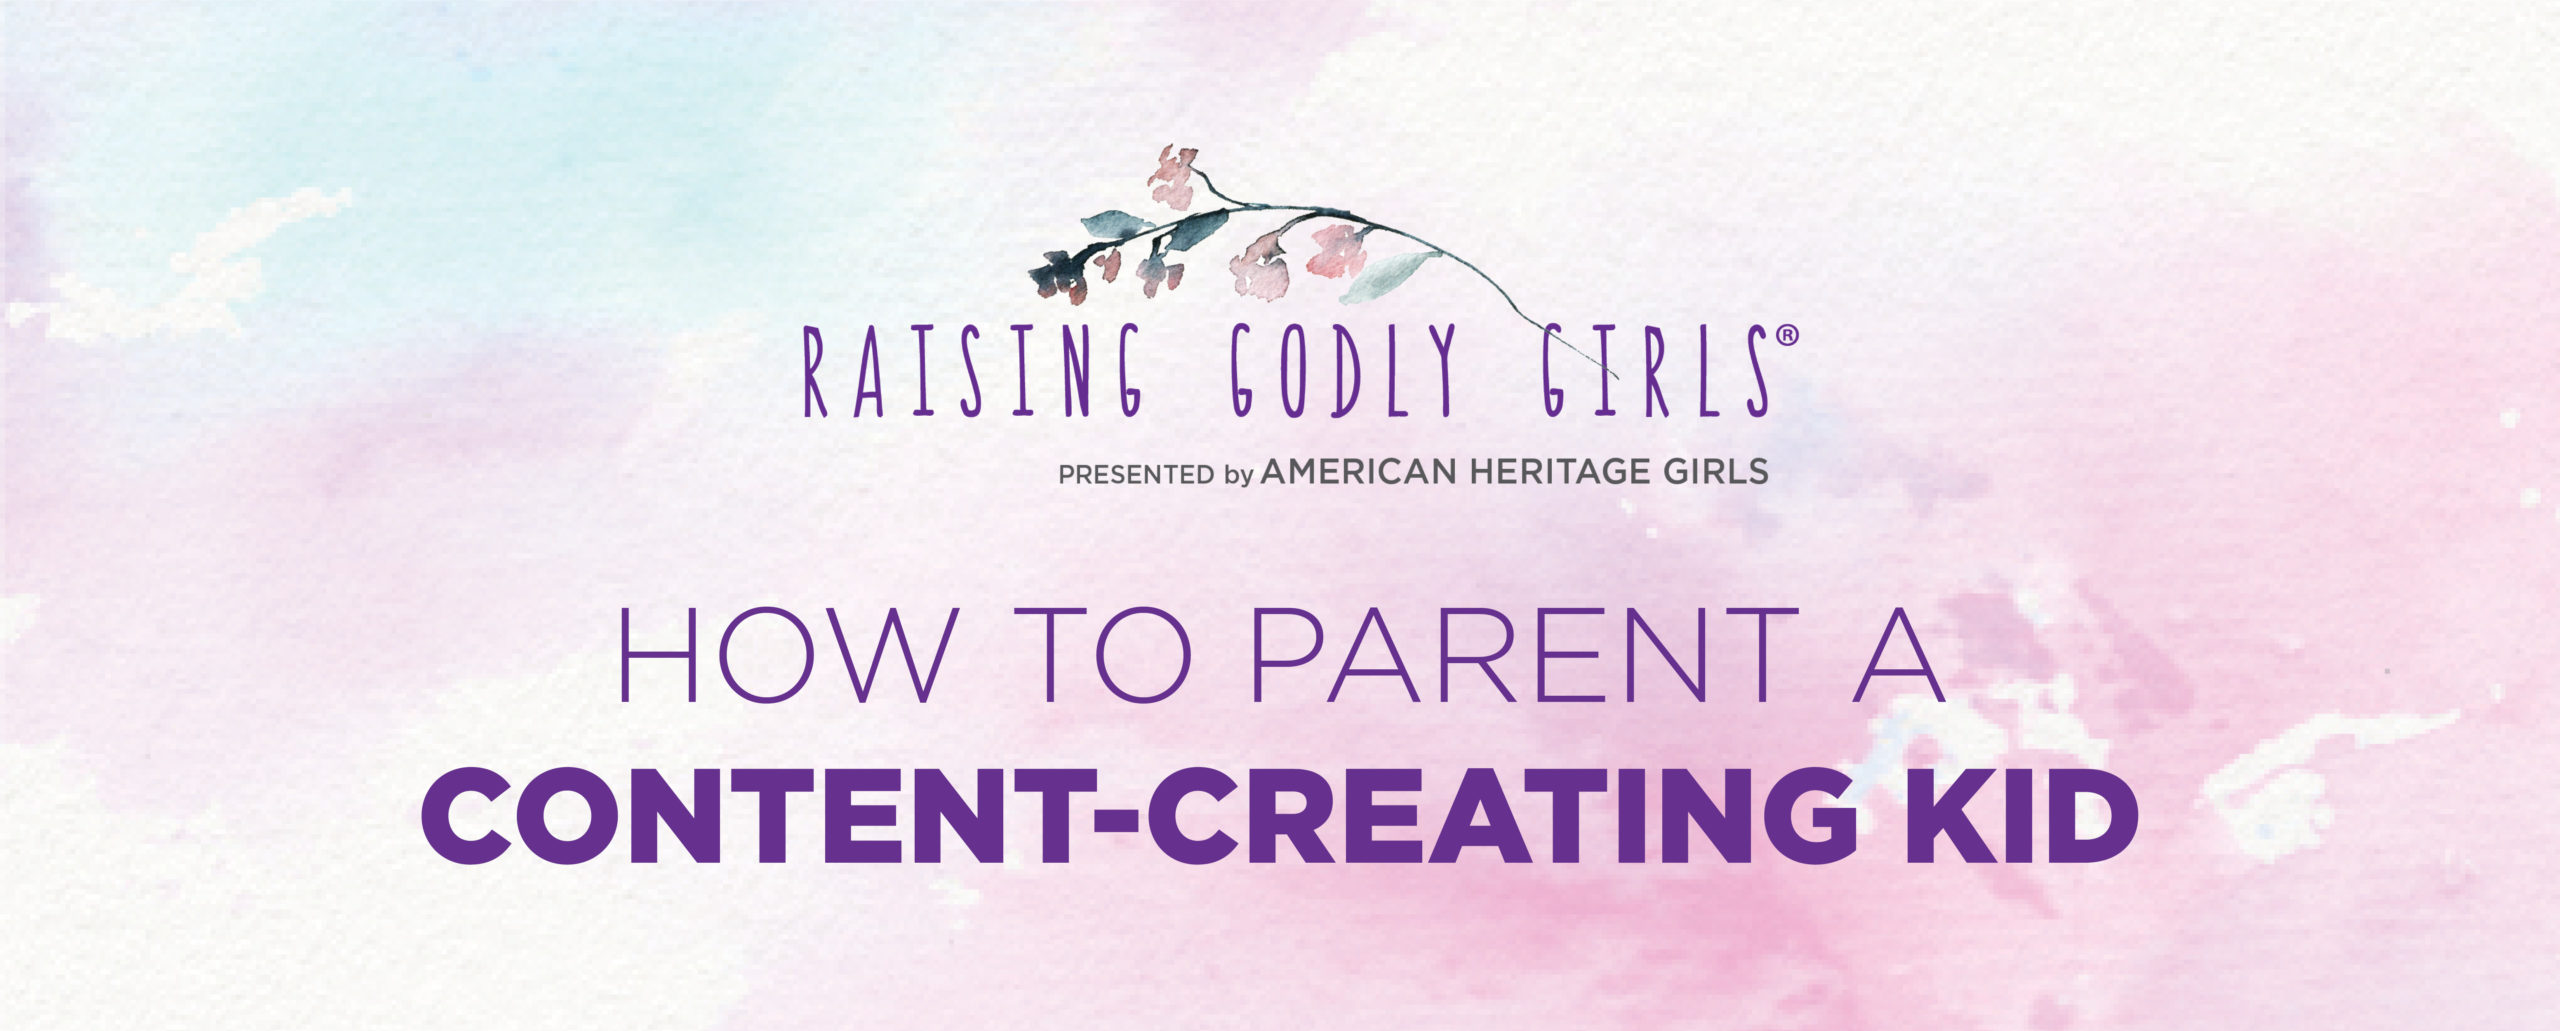 Raising Godly Girls How to Parent a Content Creating Kid